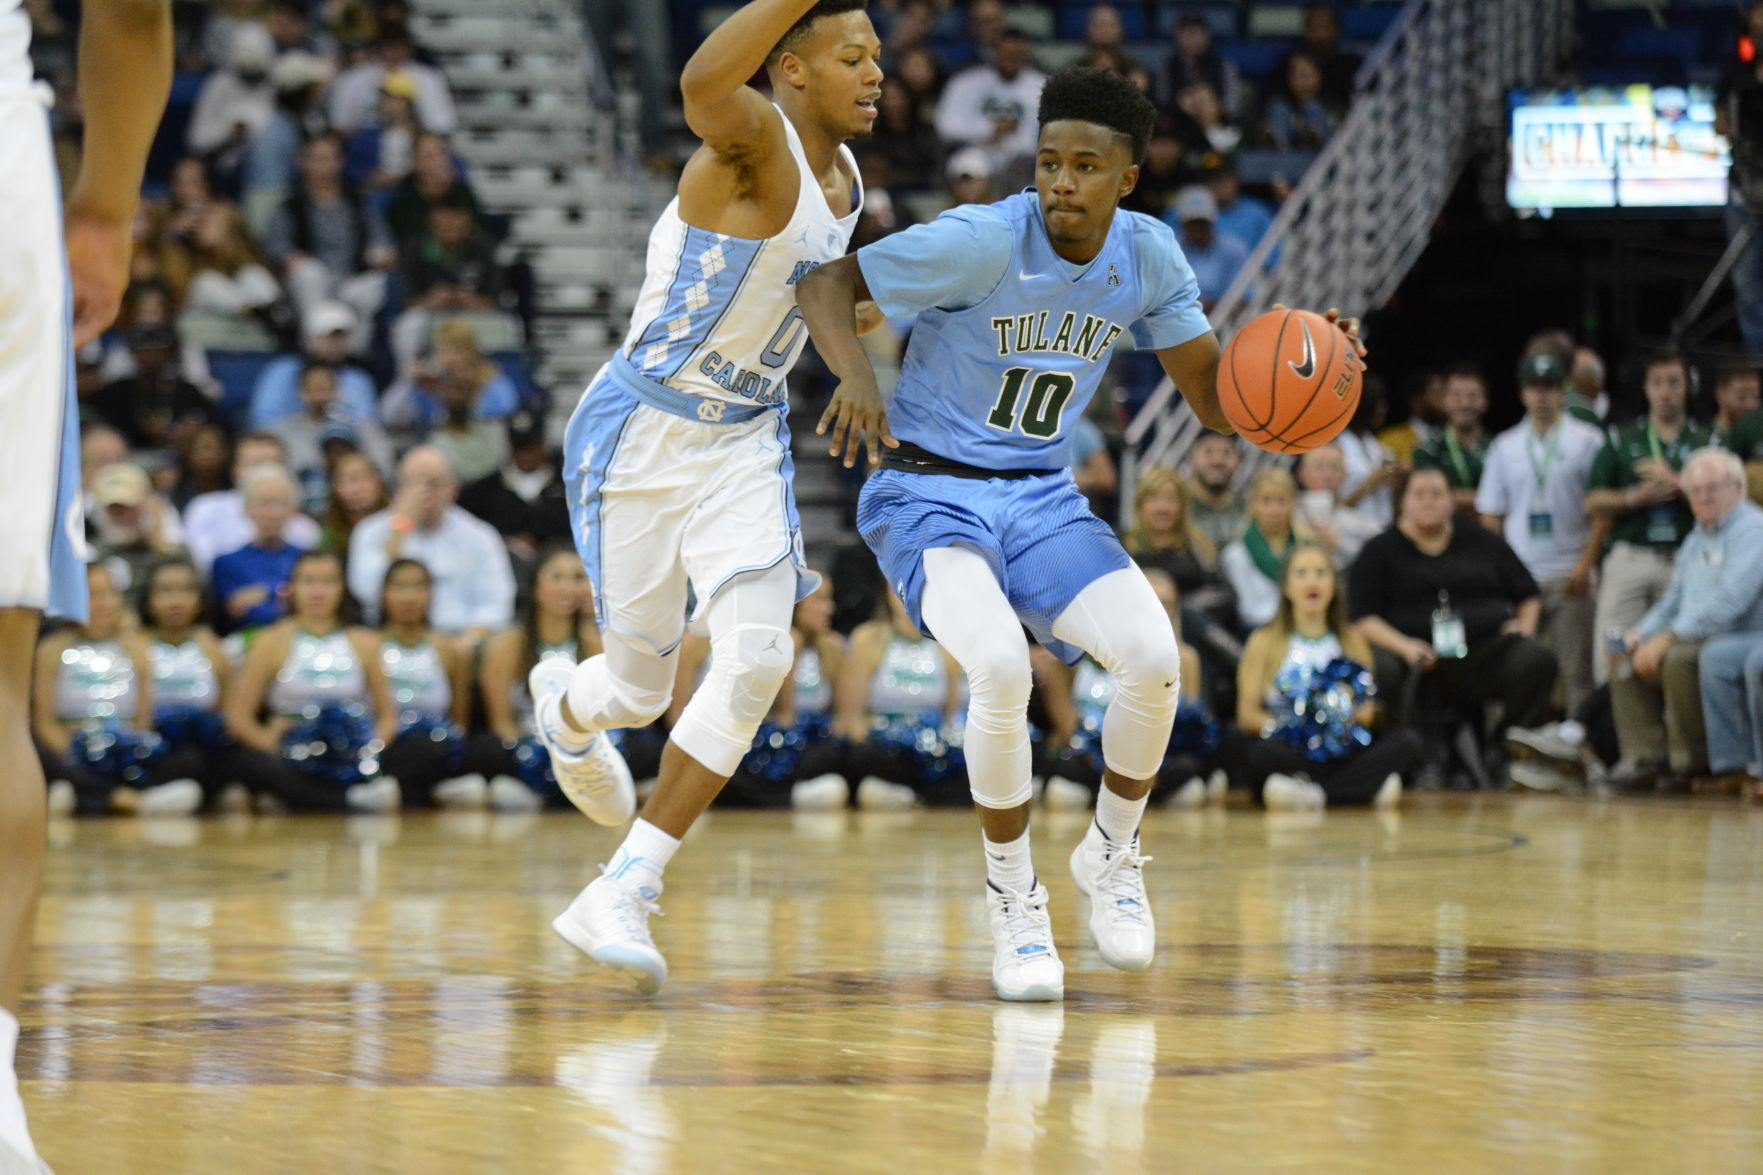 Sophomore guard Von Julien dribbles around a UNC defender as the teams clashed on Nov. 11 in the Smoothie King Center.